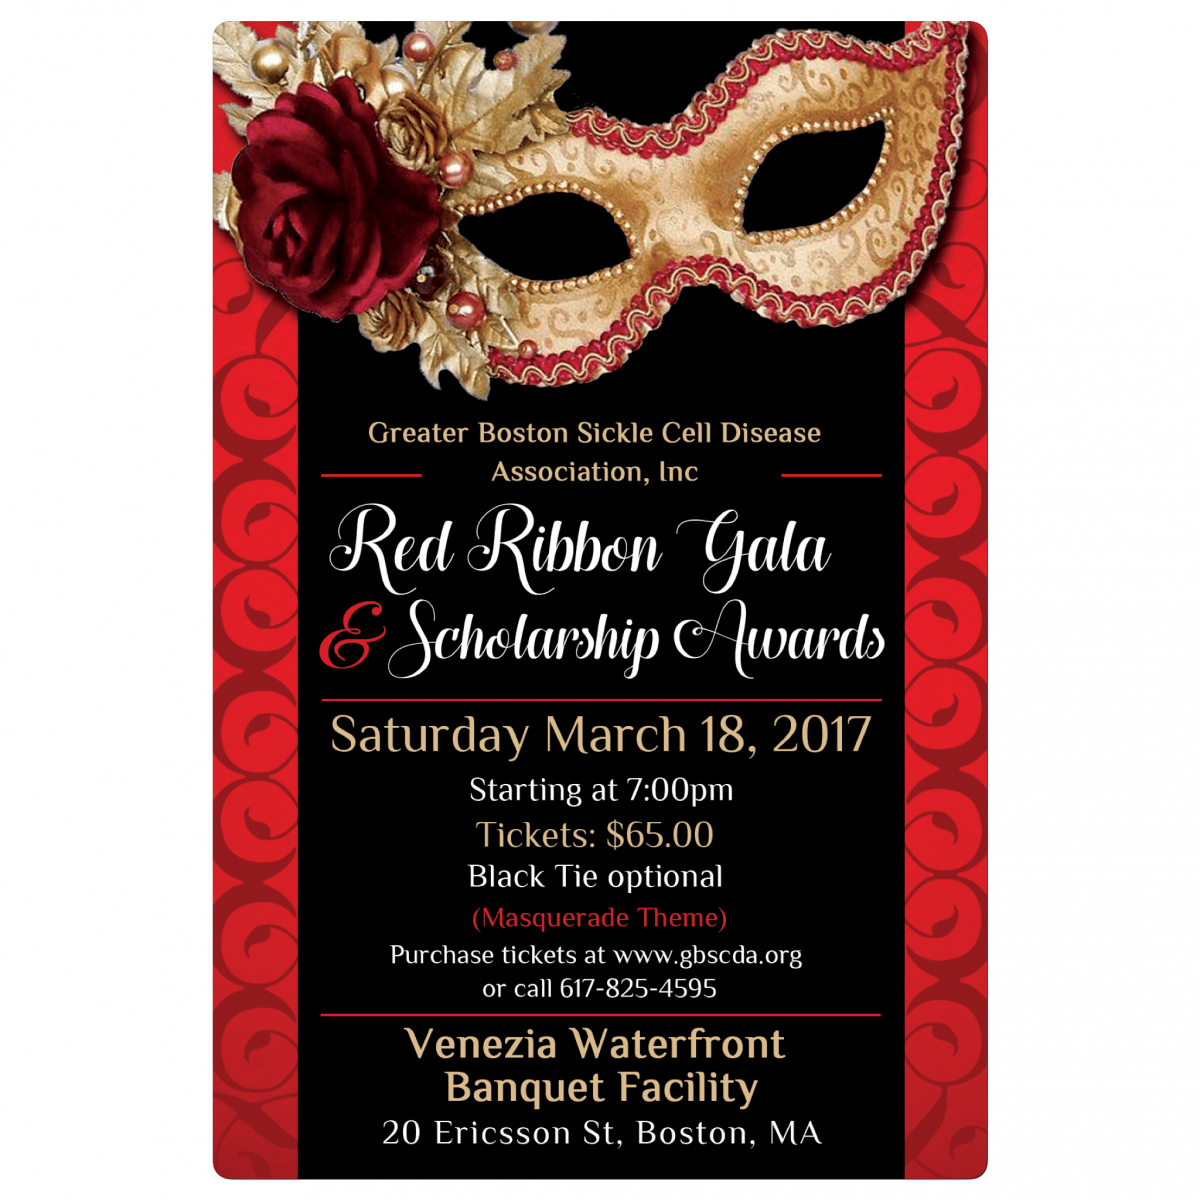 Red Ribbon Gala